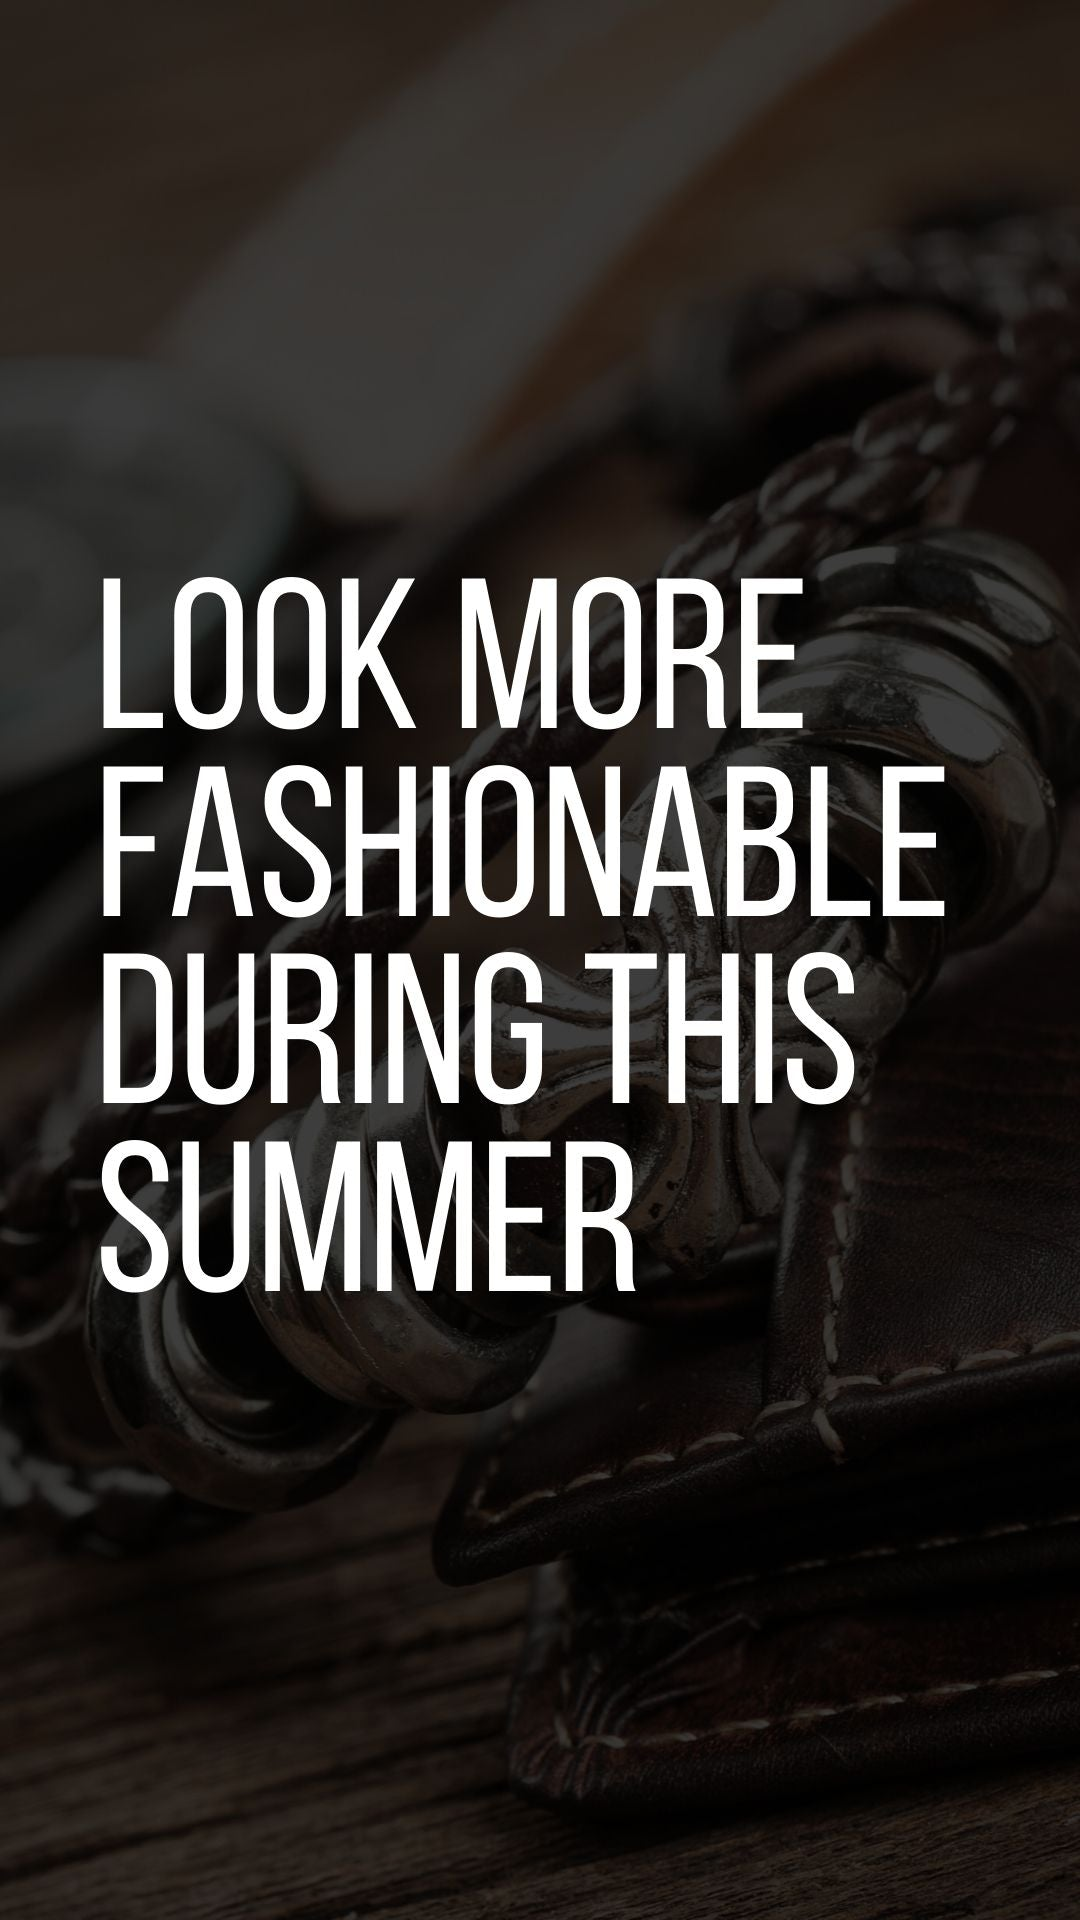 Look More Fashionable During This Summer